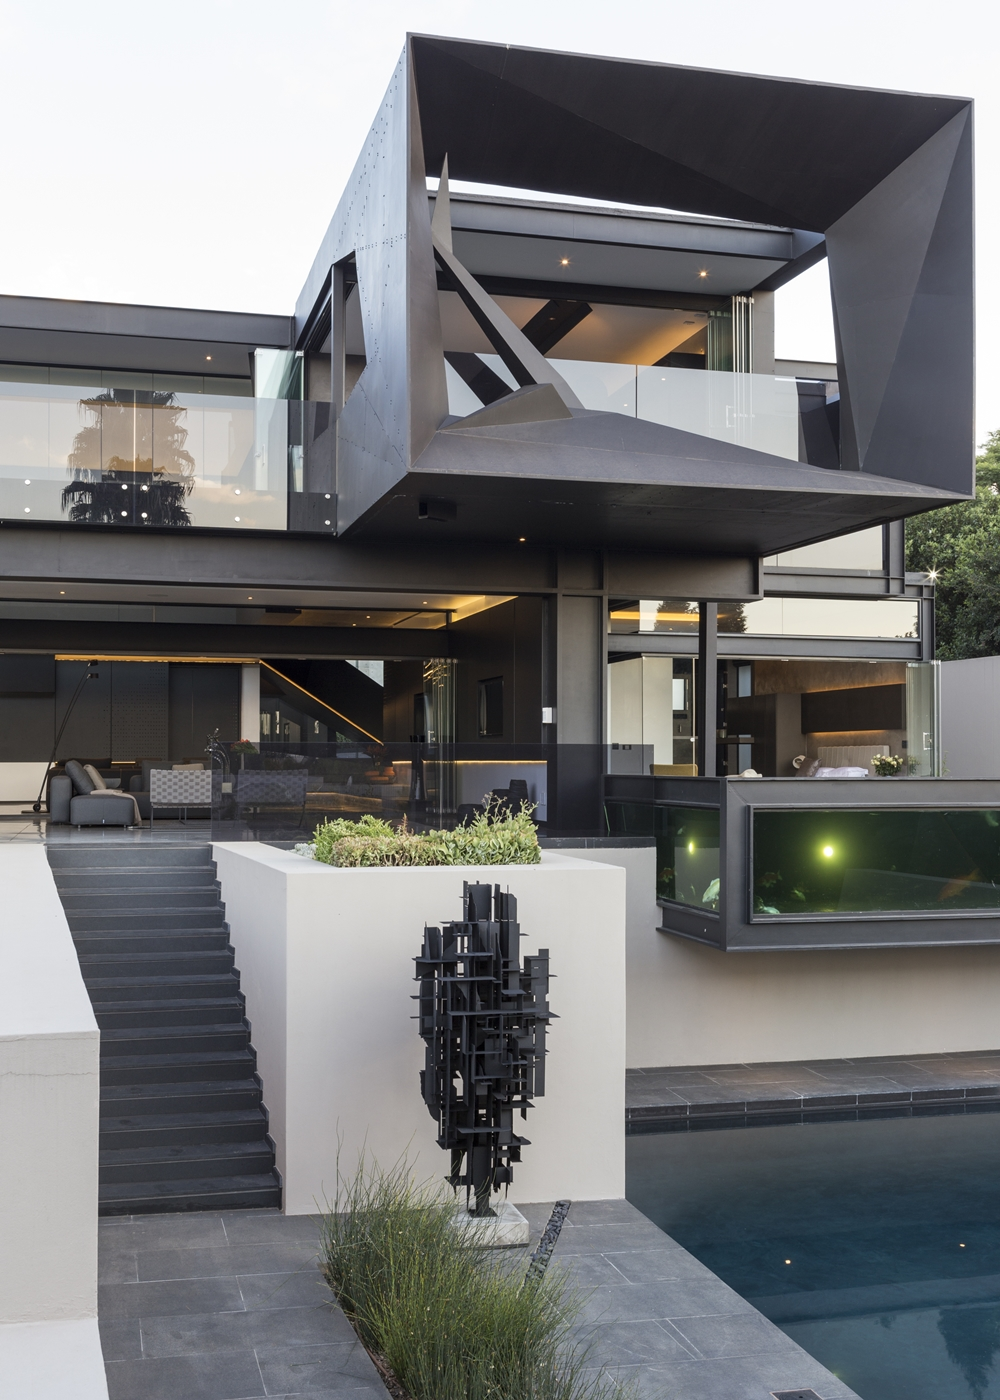 Best houses in the world amazing kloof road house for Empresas constructoras de casas